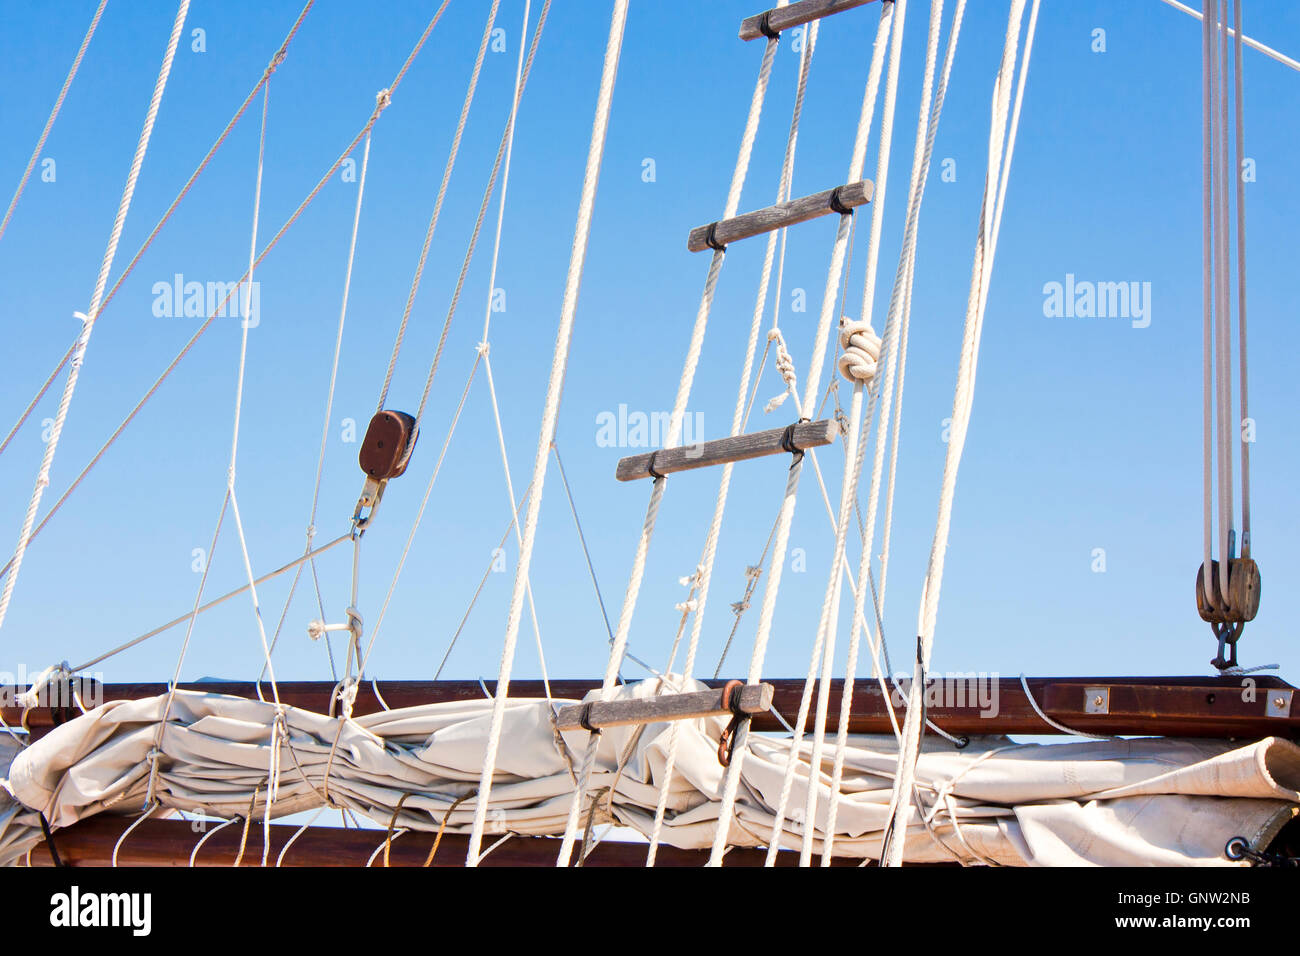 Detail of an old sailboat wrapped sail, boom, rigging and rope ladder against the blue sky - Stock Image